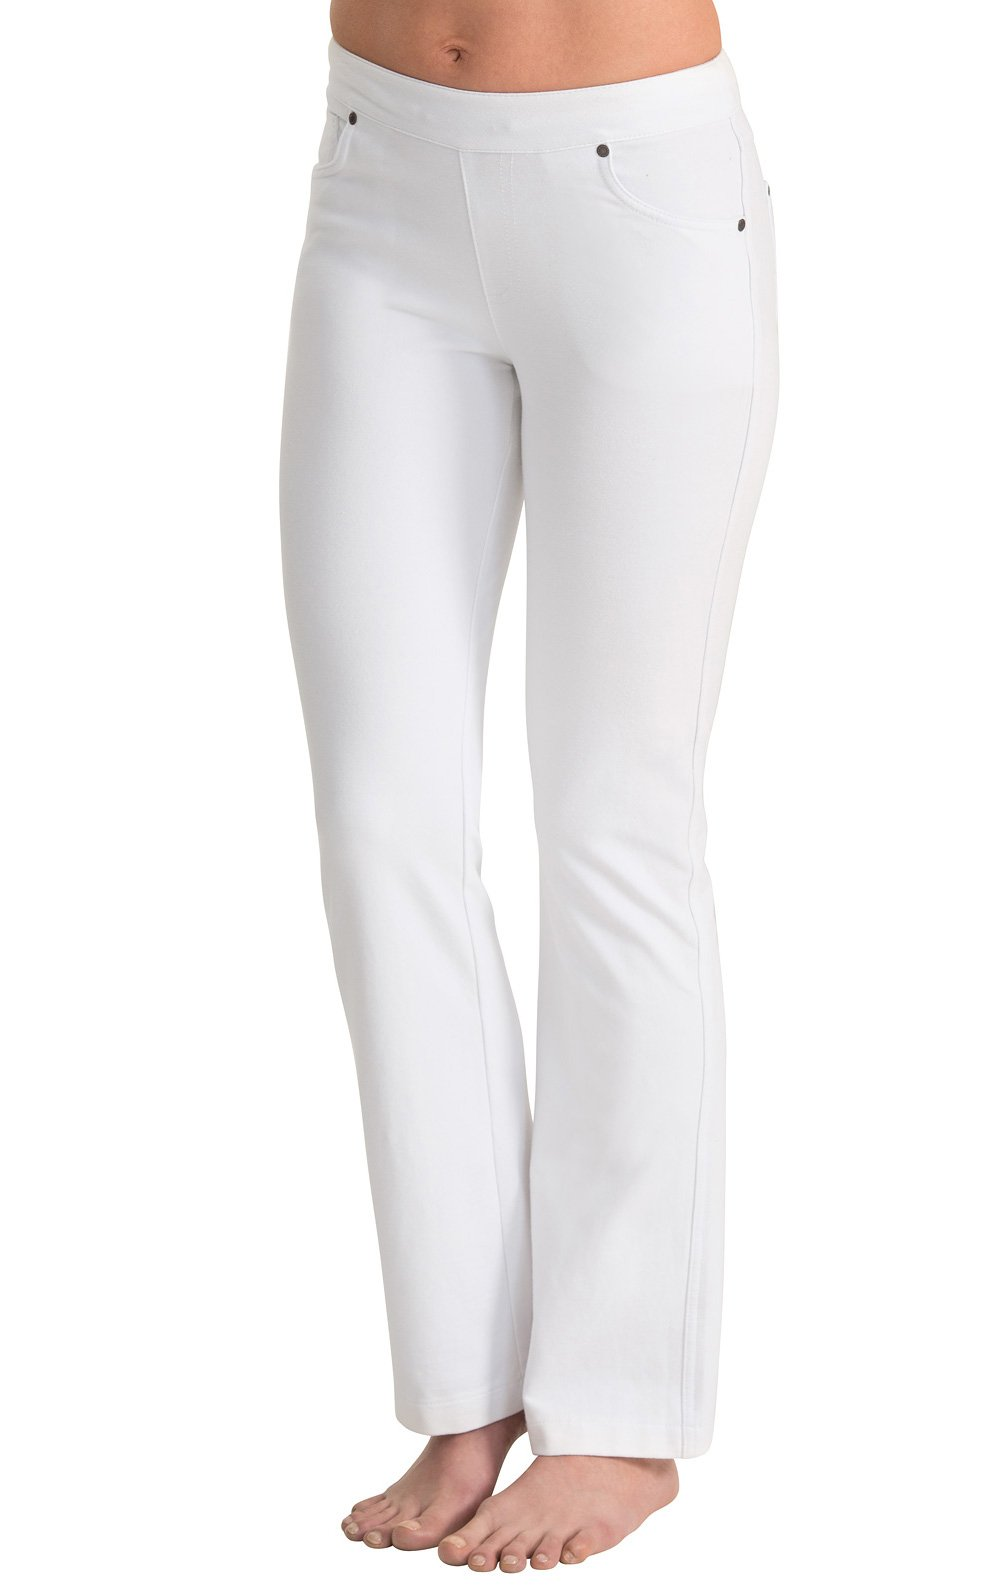 PajamaJeans - Lightweight Bootcut White Stretch Knit Denim Jeans for Women G04209